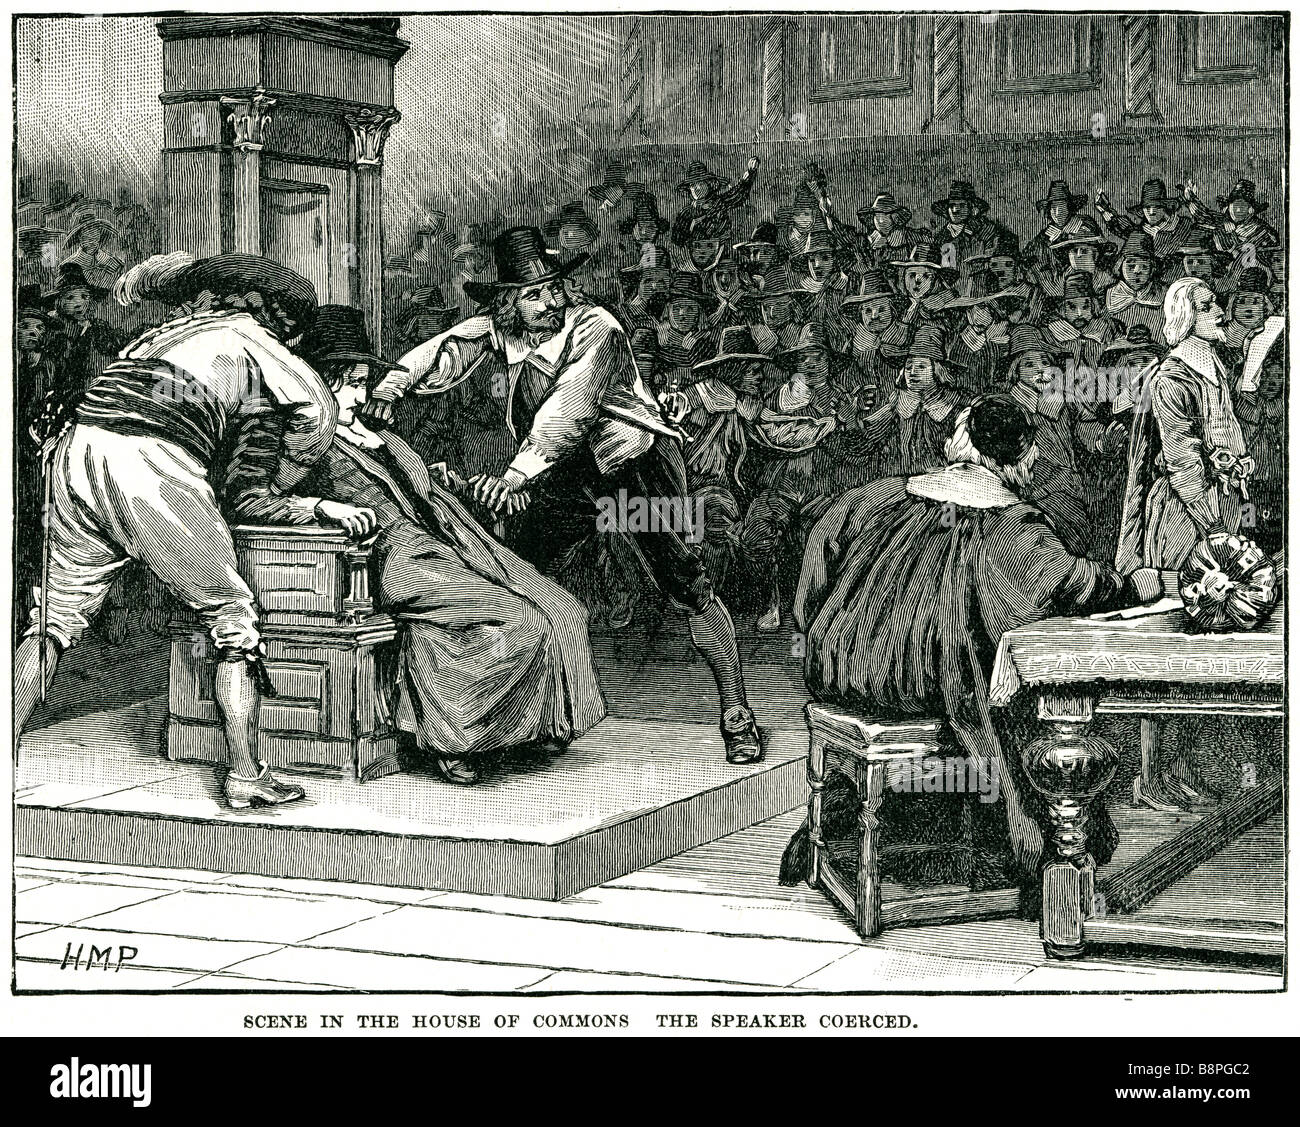 scene in the house of commons the speaker coerced In January 1629, Charles  opened the second session of the Parliament, which ha